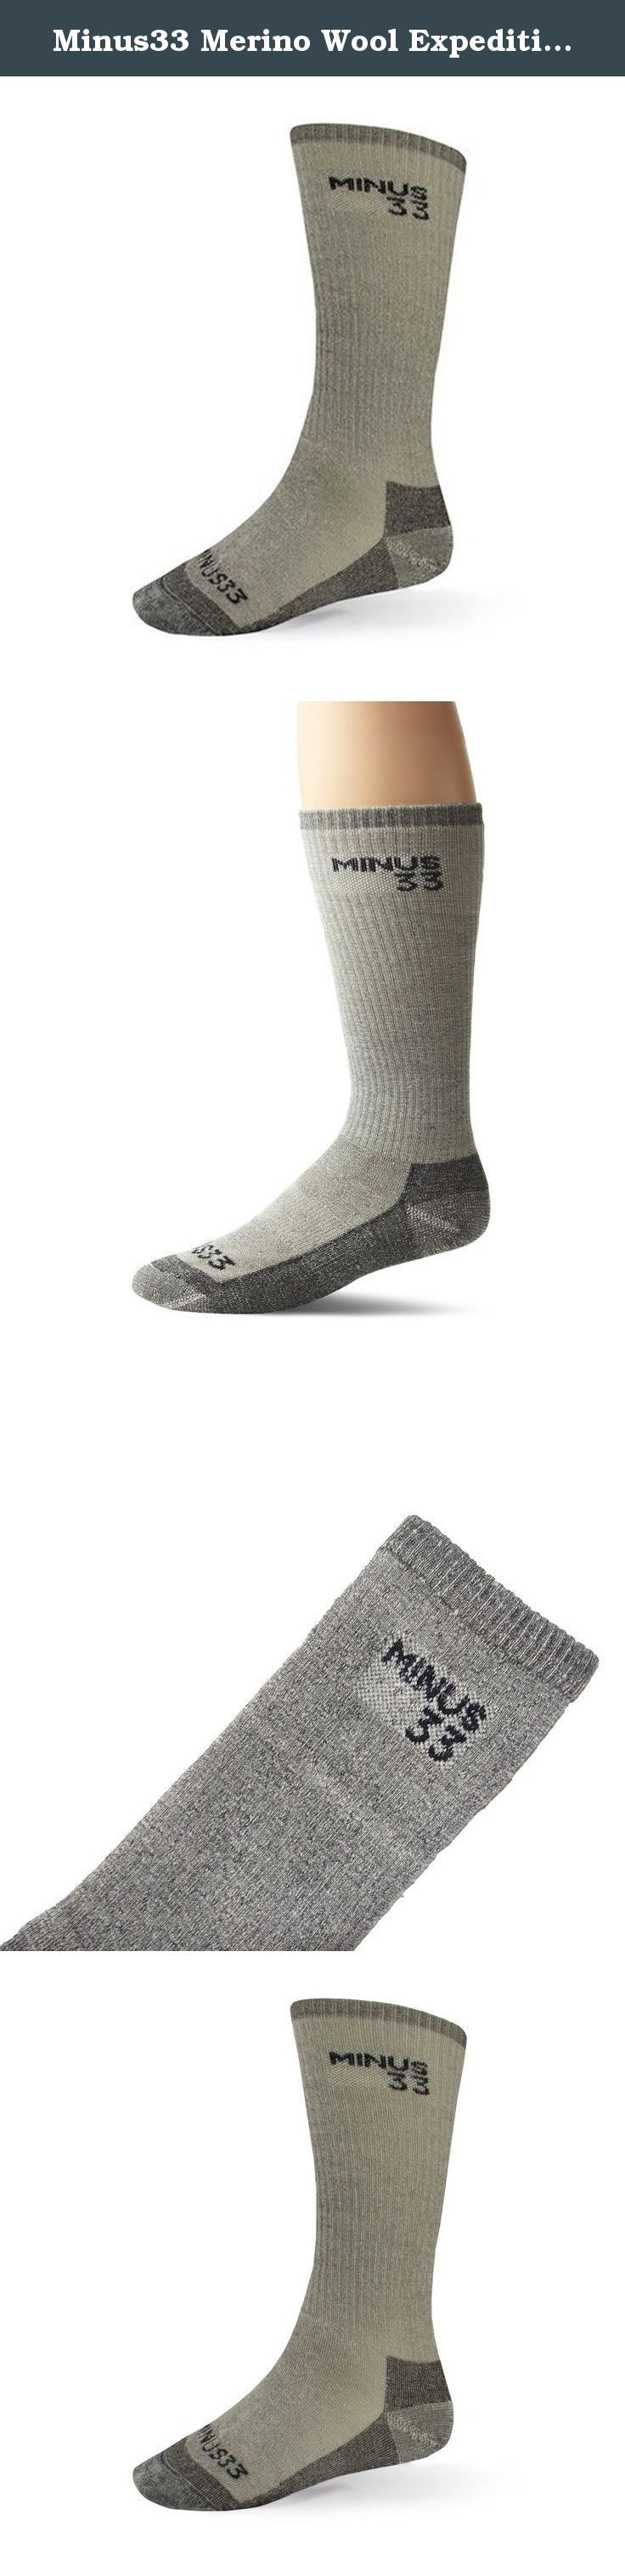 Minus33 Merino Wool Expedition Mountaineer Sock, Grey Heather, Large. Accessories are the finishing details that complete an outfit. Our accessories compliment the warmth and comfort you've come to expect from Minus33 Merino Wool. We have Balaclavas, Hats, and Neck Gators for your head; Merino Wool Glove Liners for your hands; and a wide variety of stylish Merino Wool socks for your feet. With an array of weights, colors and styles, our accessories will complete your look. You want to…